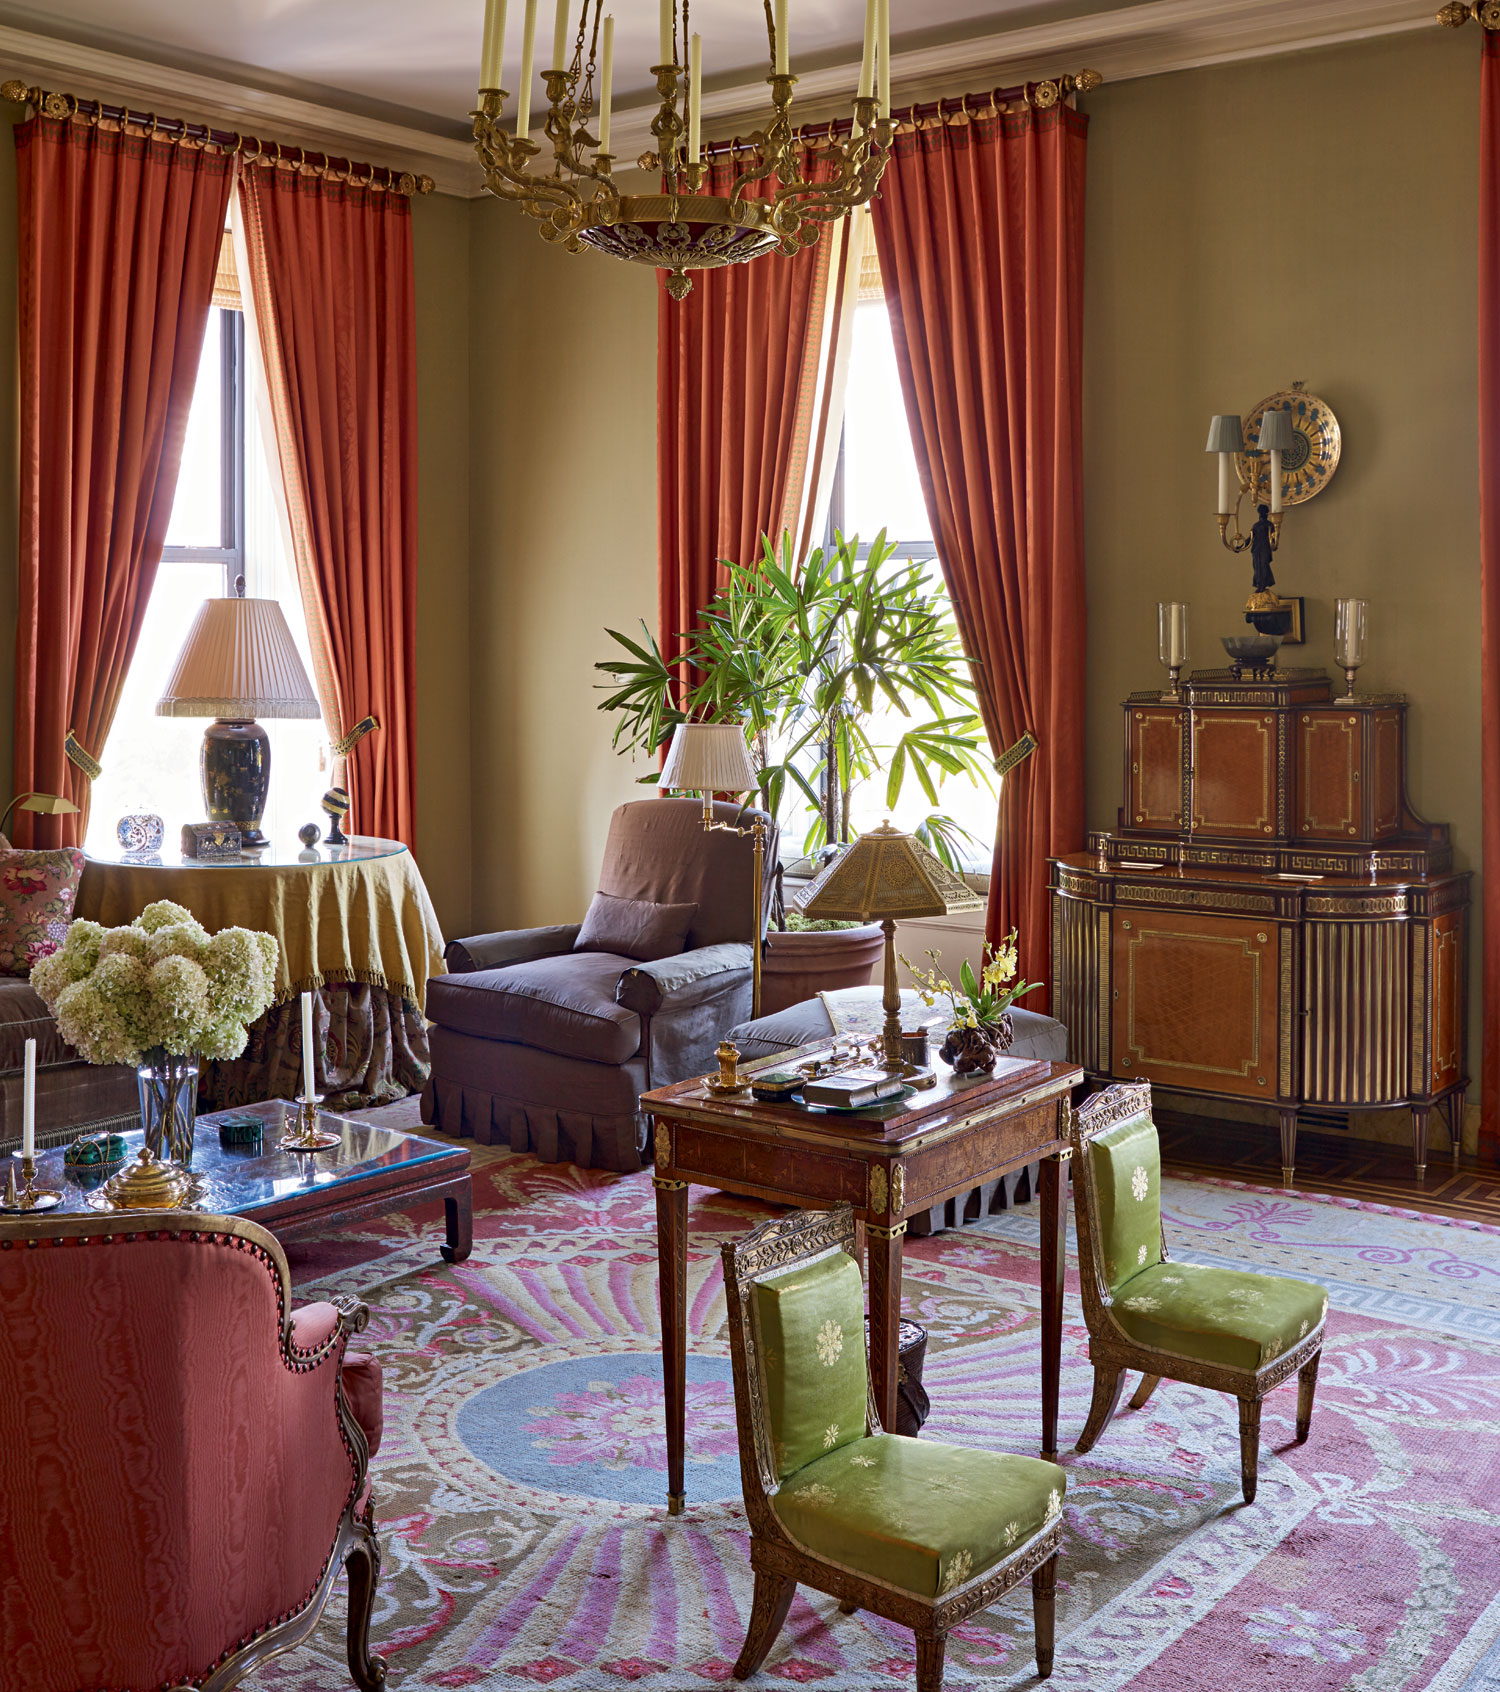 A native of Sicily, the architect Rosario Candela arrived in New York in the 1920s and was soon embraced by high society. His work became the standard by which interior spatial design was to be judged.